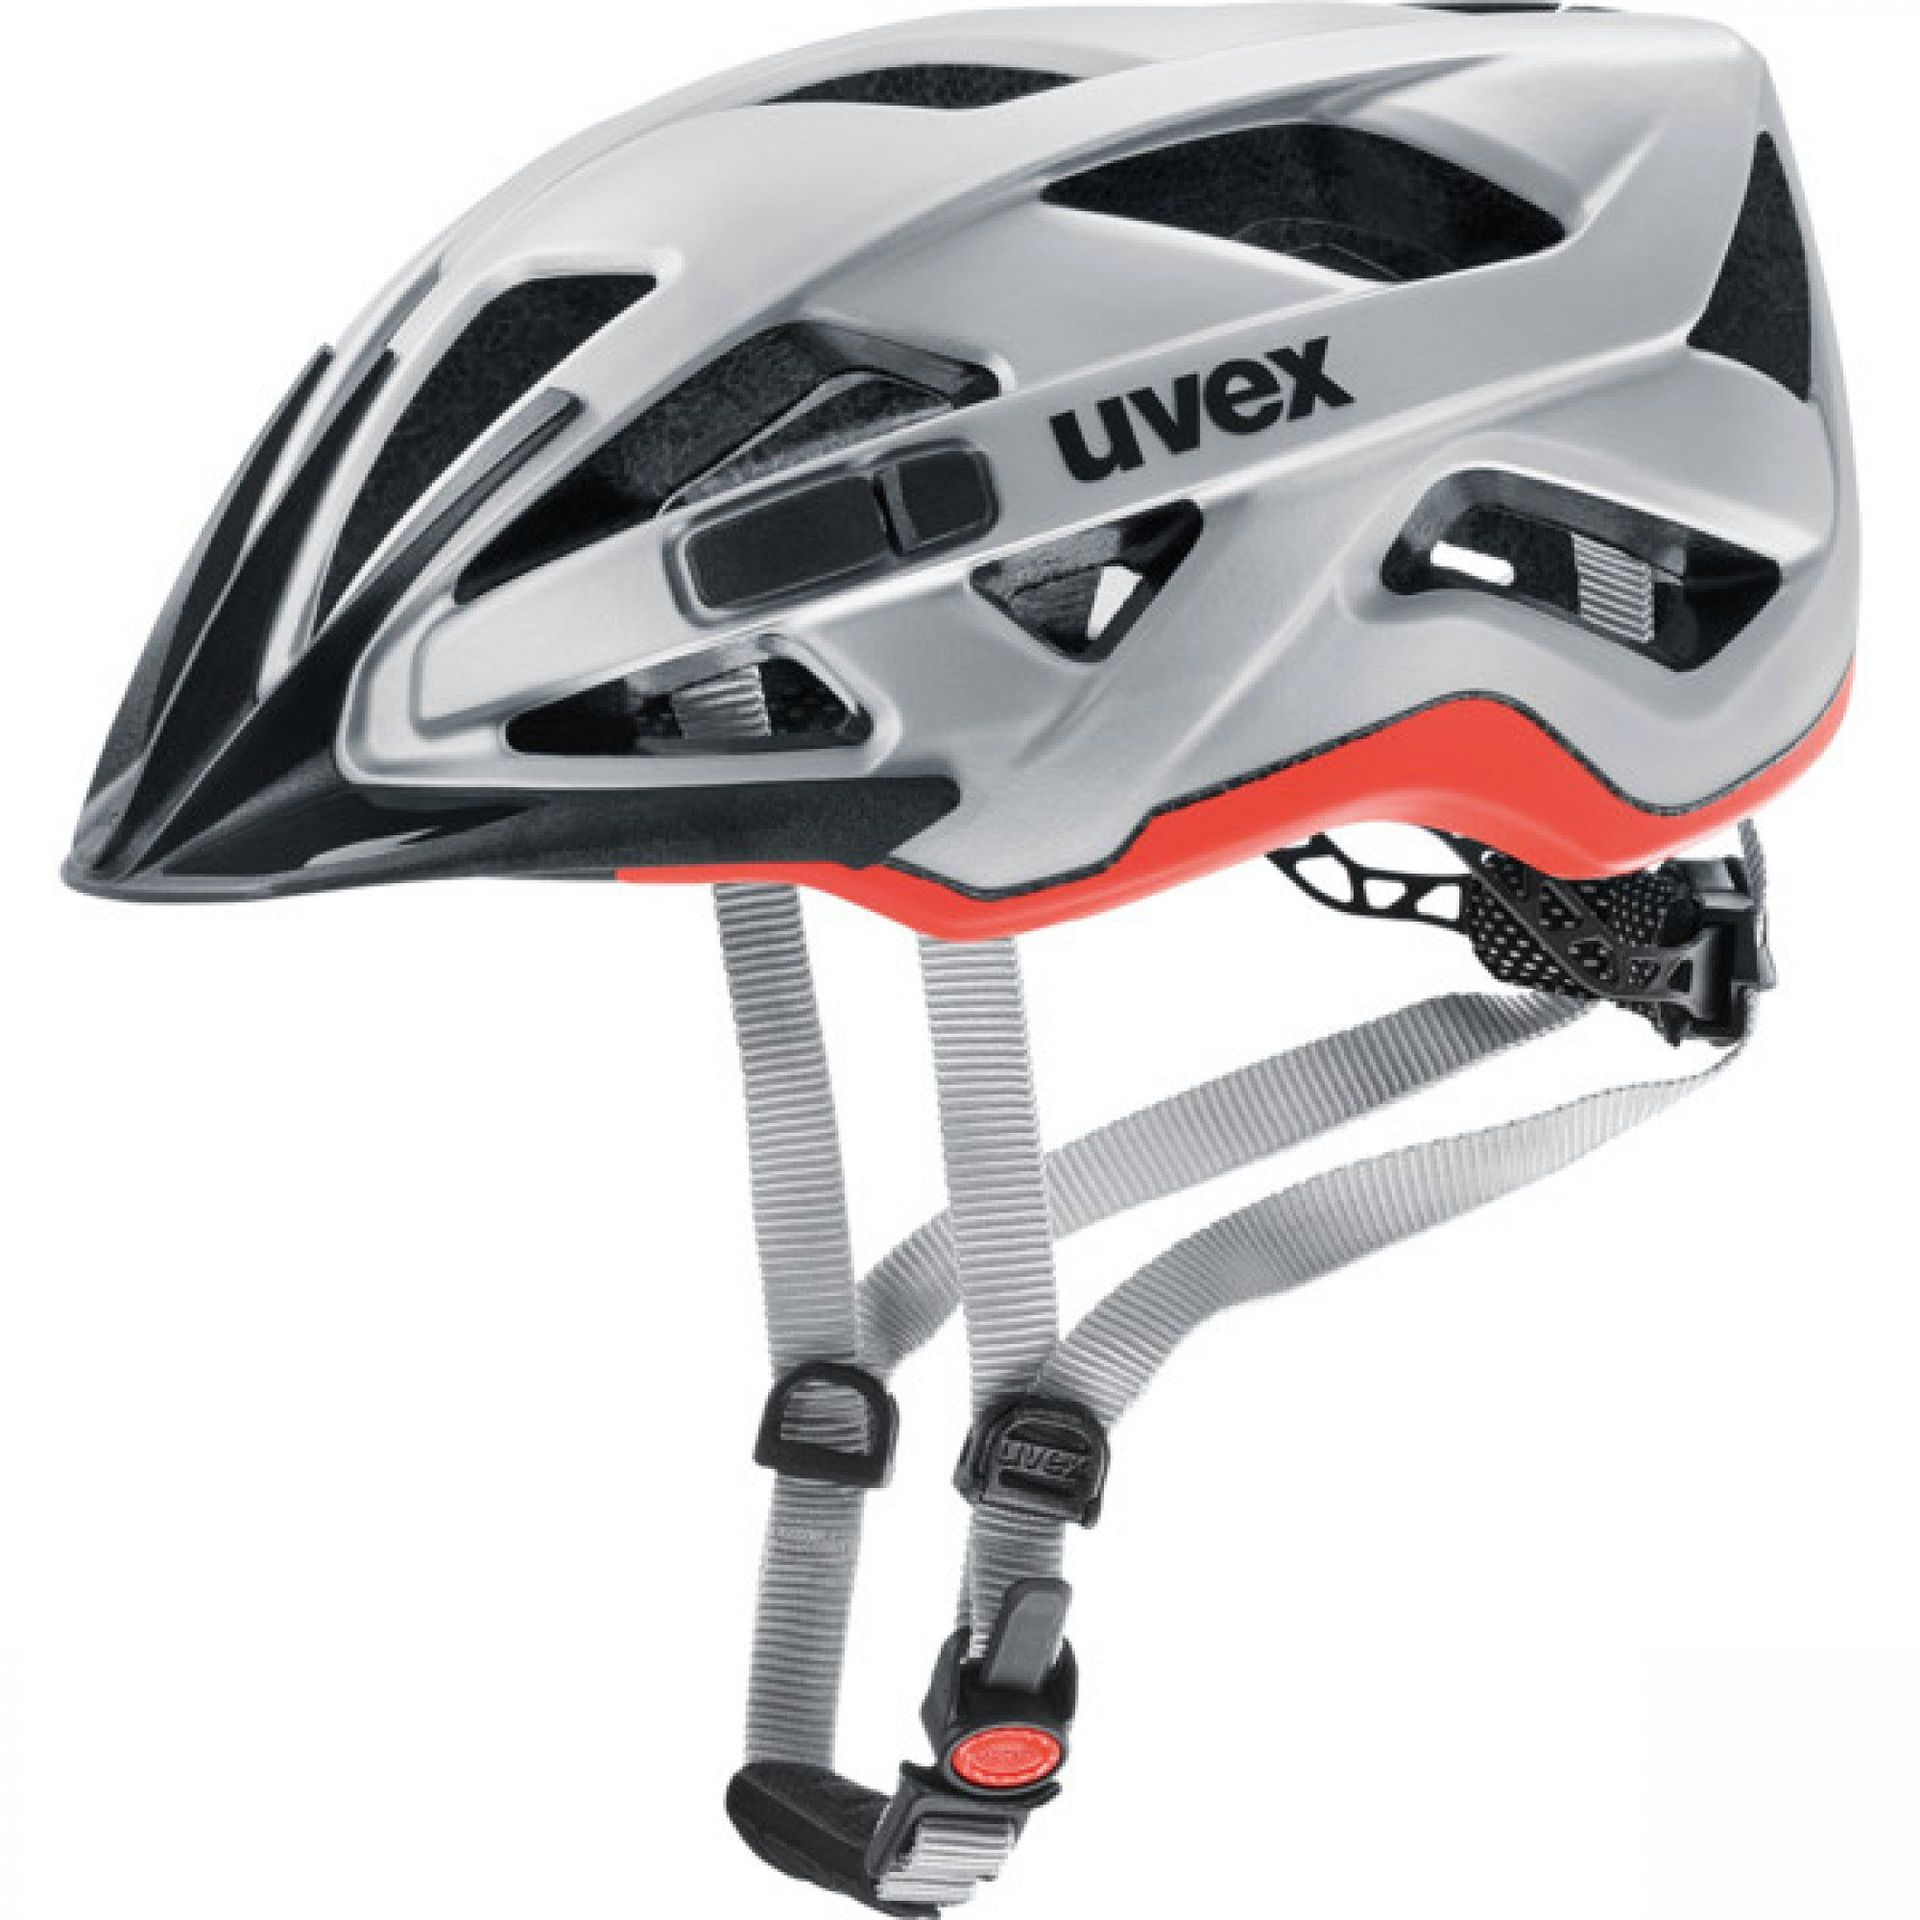 KASK ROWEROWY UVEX ACTIVE CC 427 03 SILVER ORANGE MAT